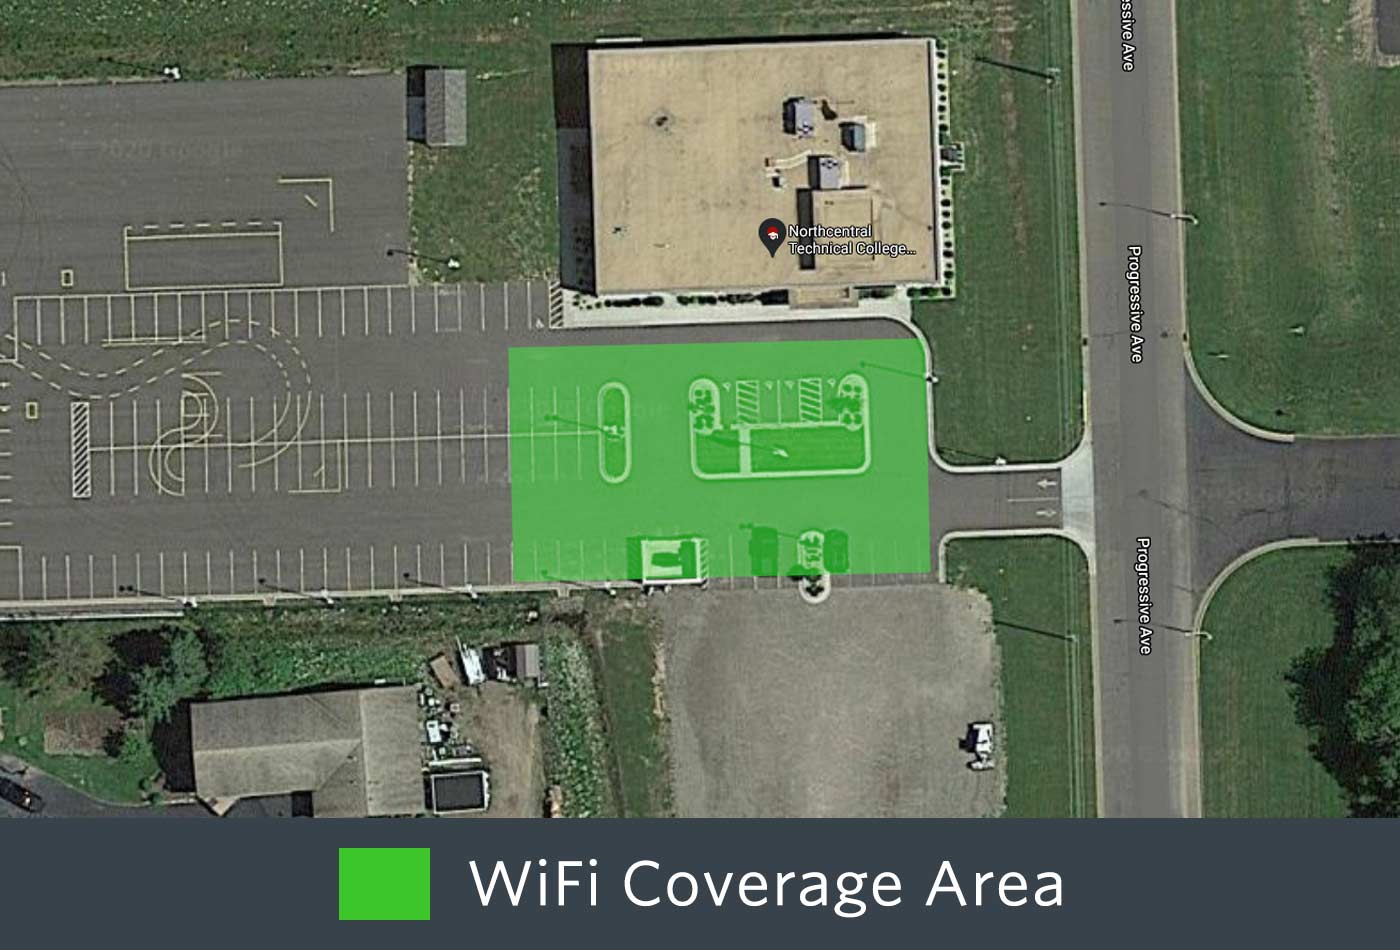 Outdoor WiFi coverage of the front of the Medford Campus